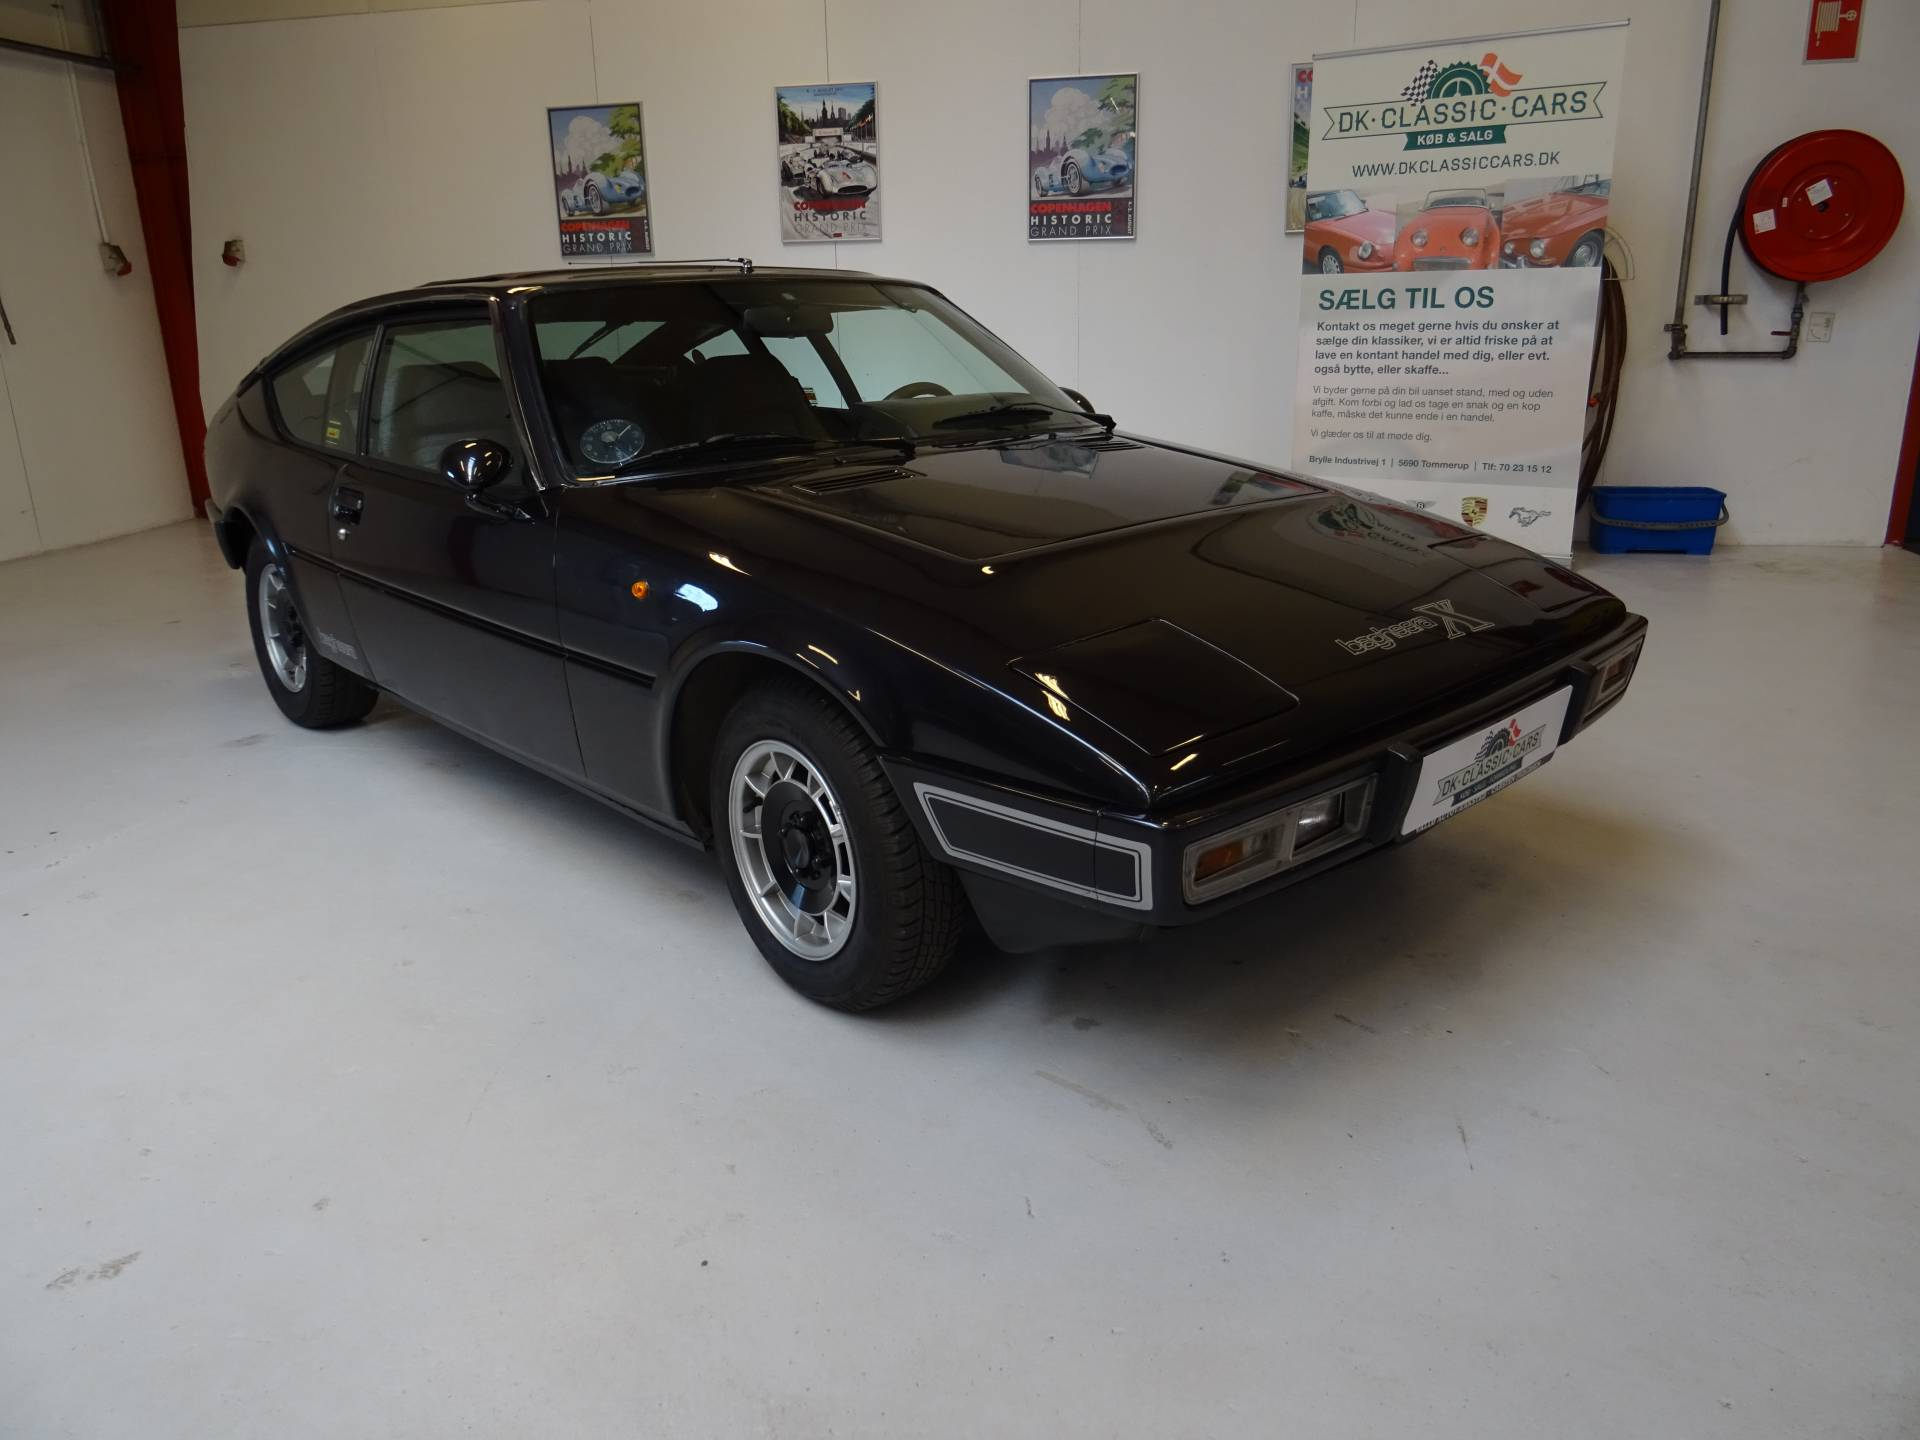 for sale matra simca bagheera x 1980 offered for gbp 15 724. Black Bedroom Furniture Sets. Home Design Ideas